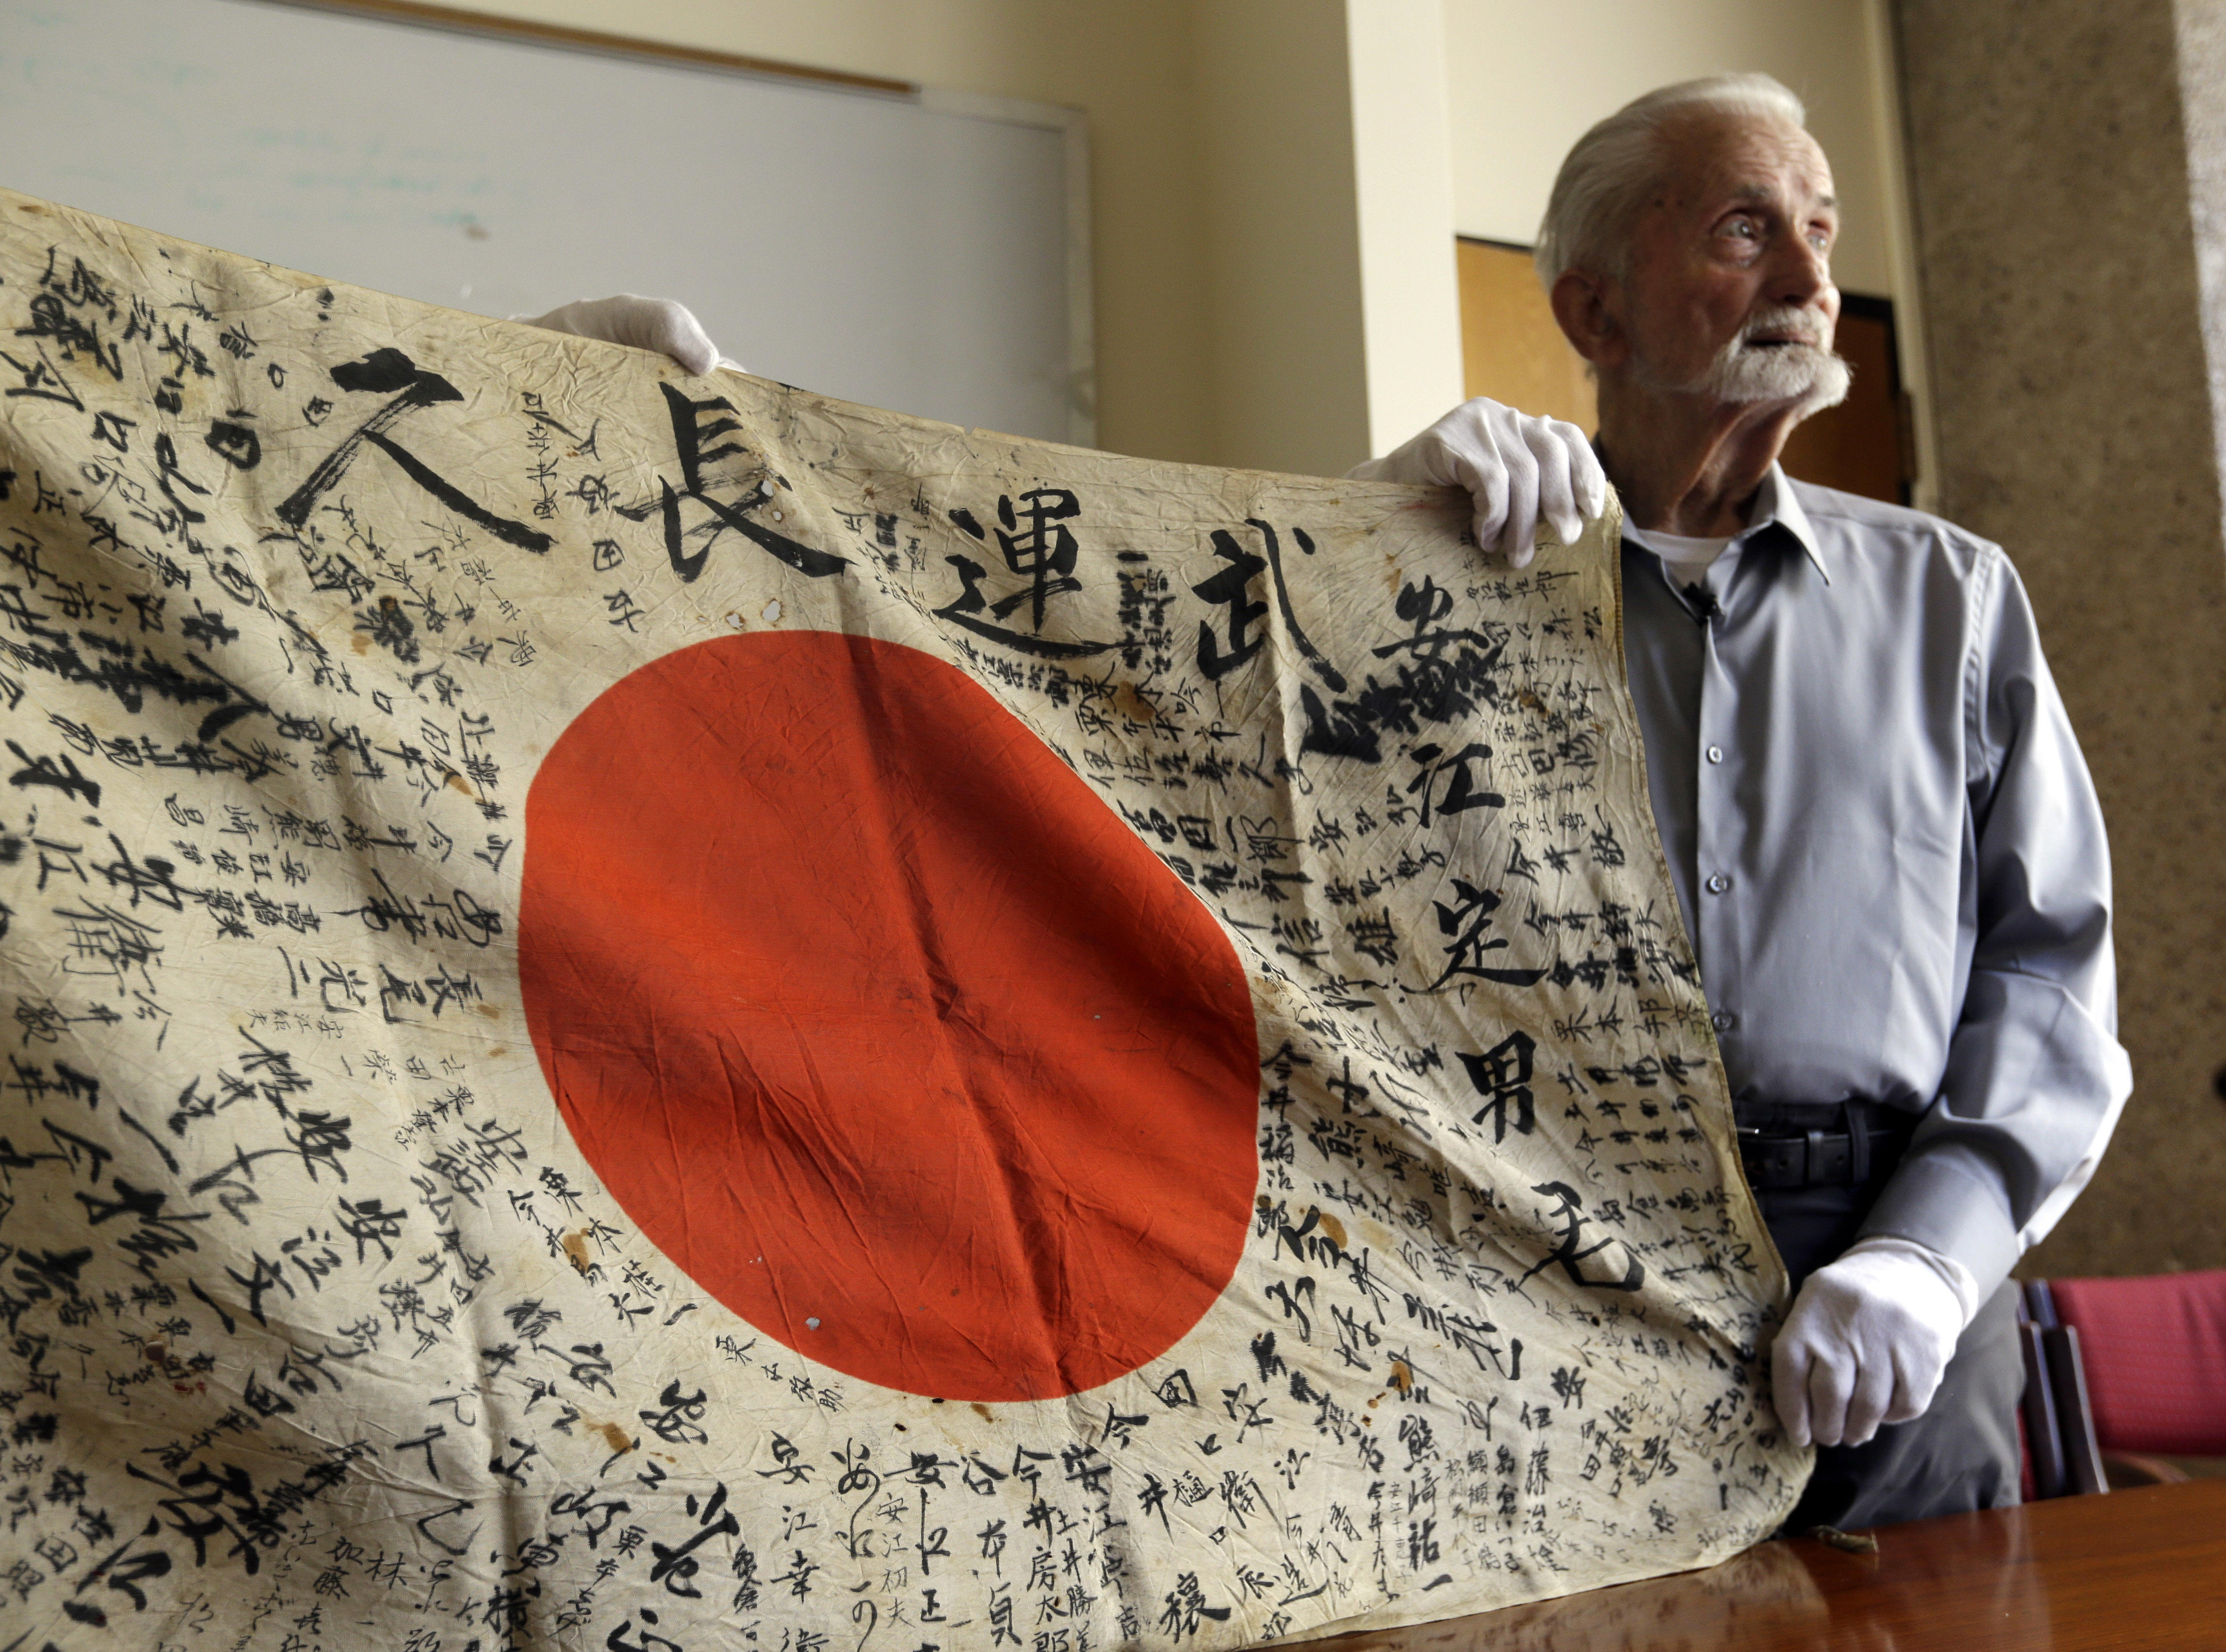 00a888d31 U.S. WWII vet bringing back flag he took from dead Japanese soldier ...